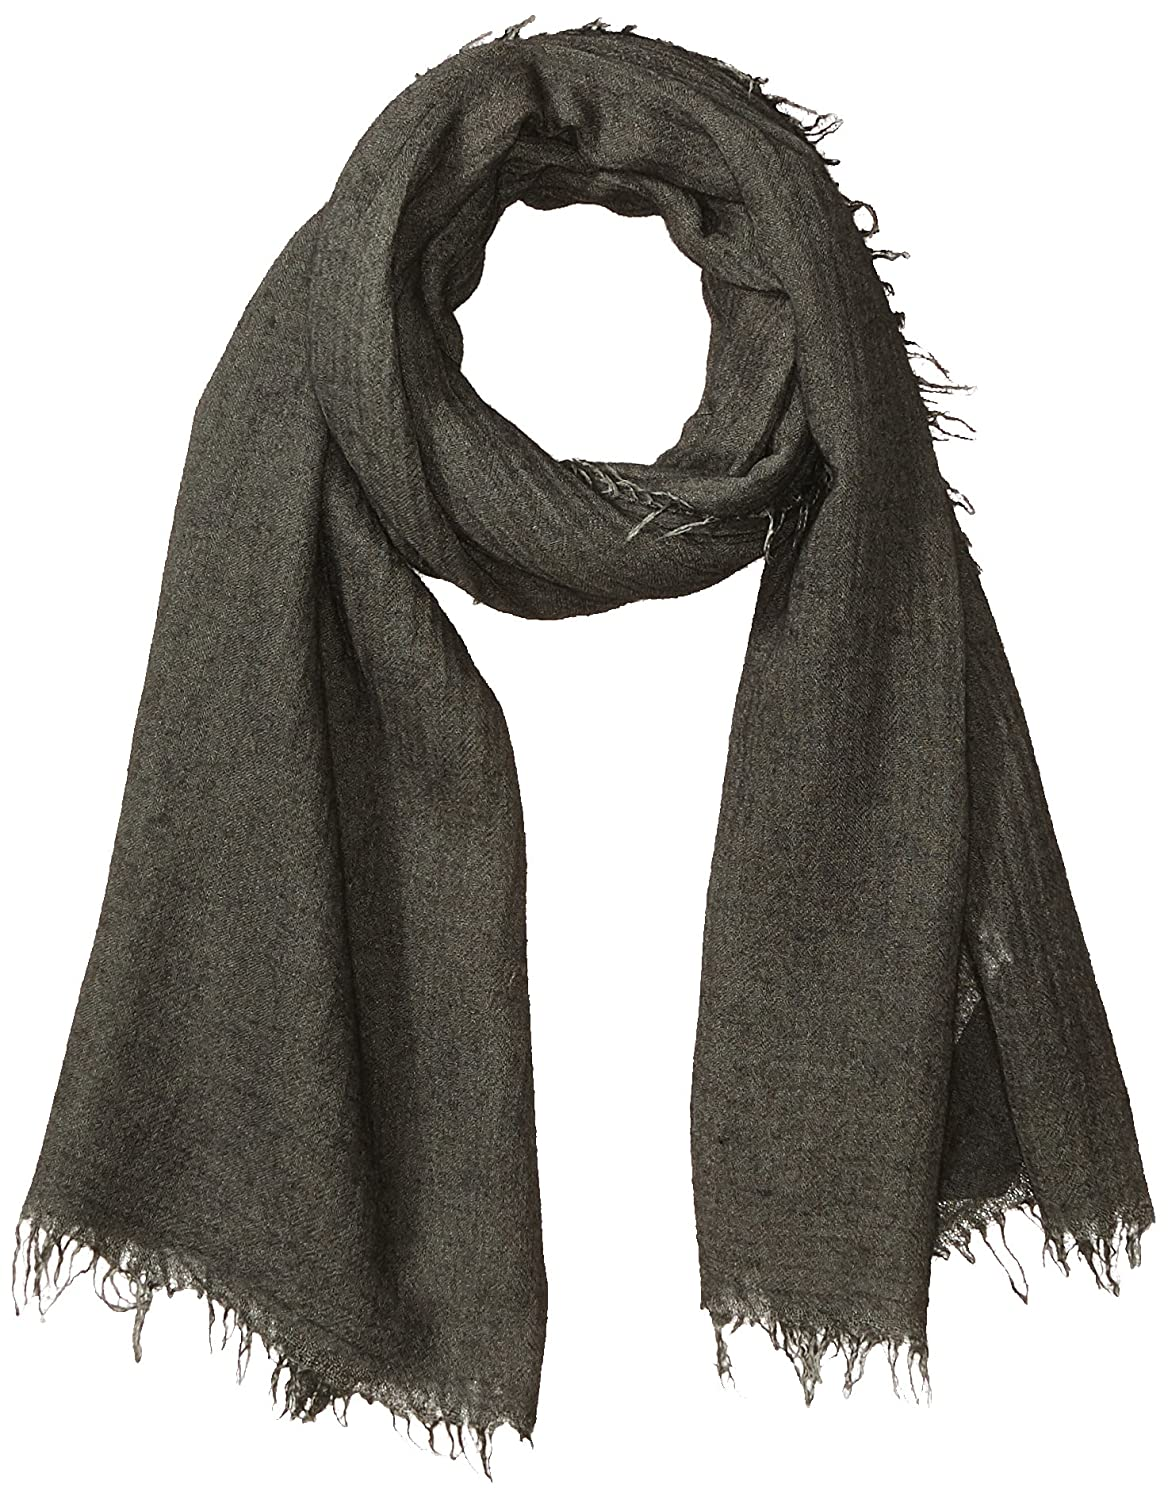 Armani Exchange Men's Viscose and Cashmere Fabric Scarf Black ONE Size 9341007A706